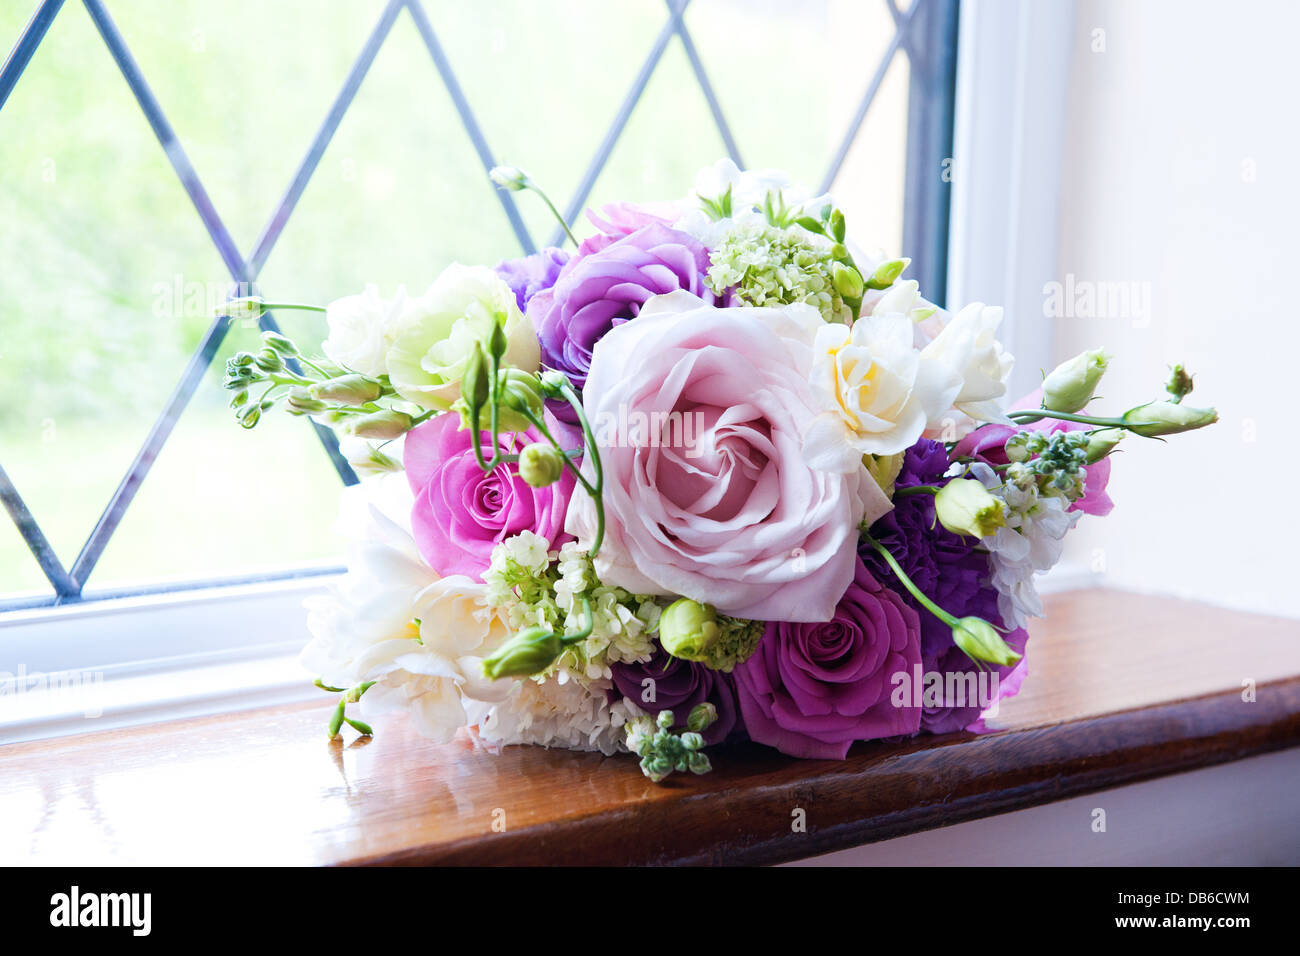 Vibrant Purple Pink White And Pastel Pink Rose Wedding Flower Stock Photo Alamy